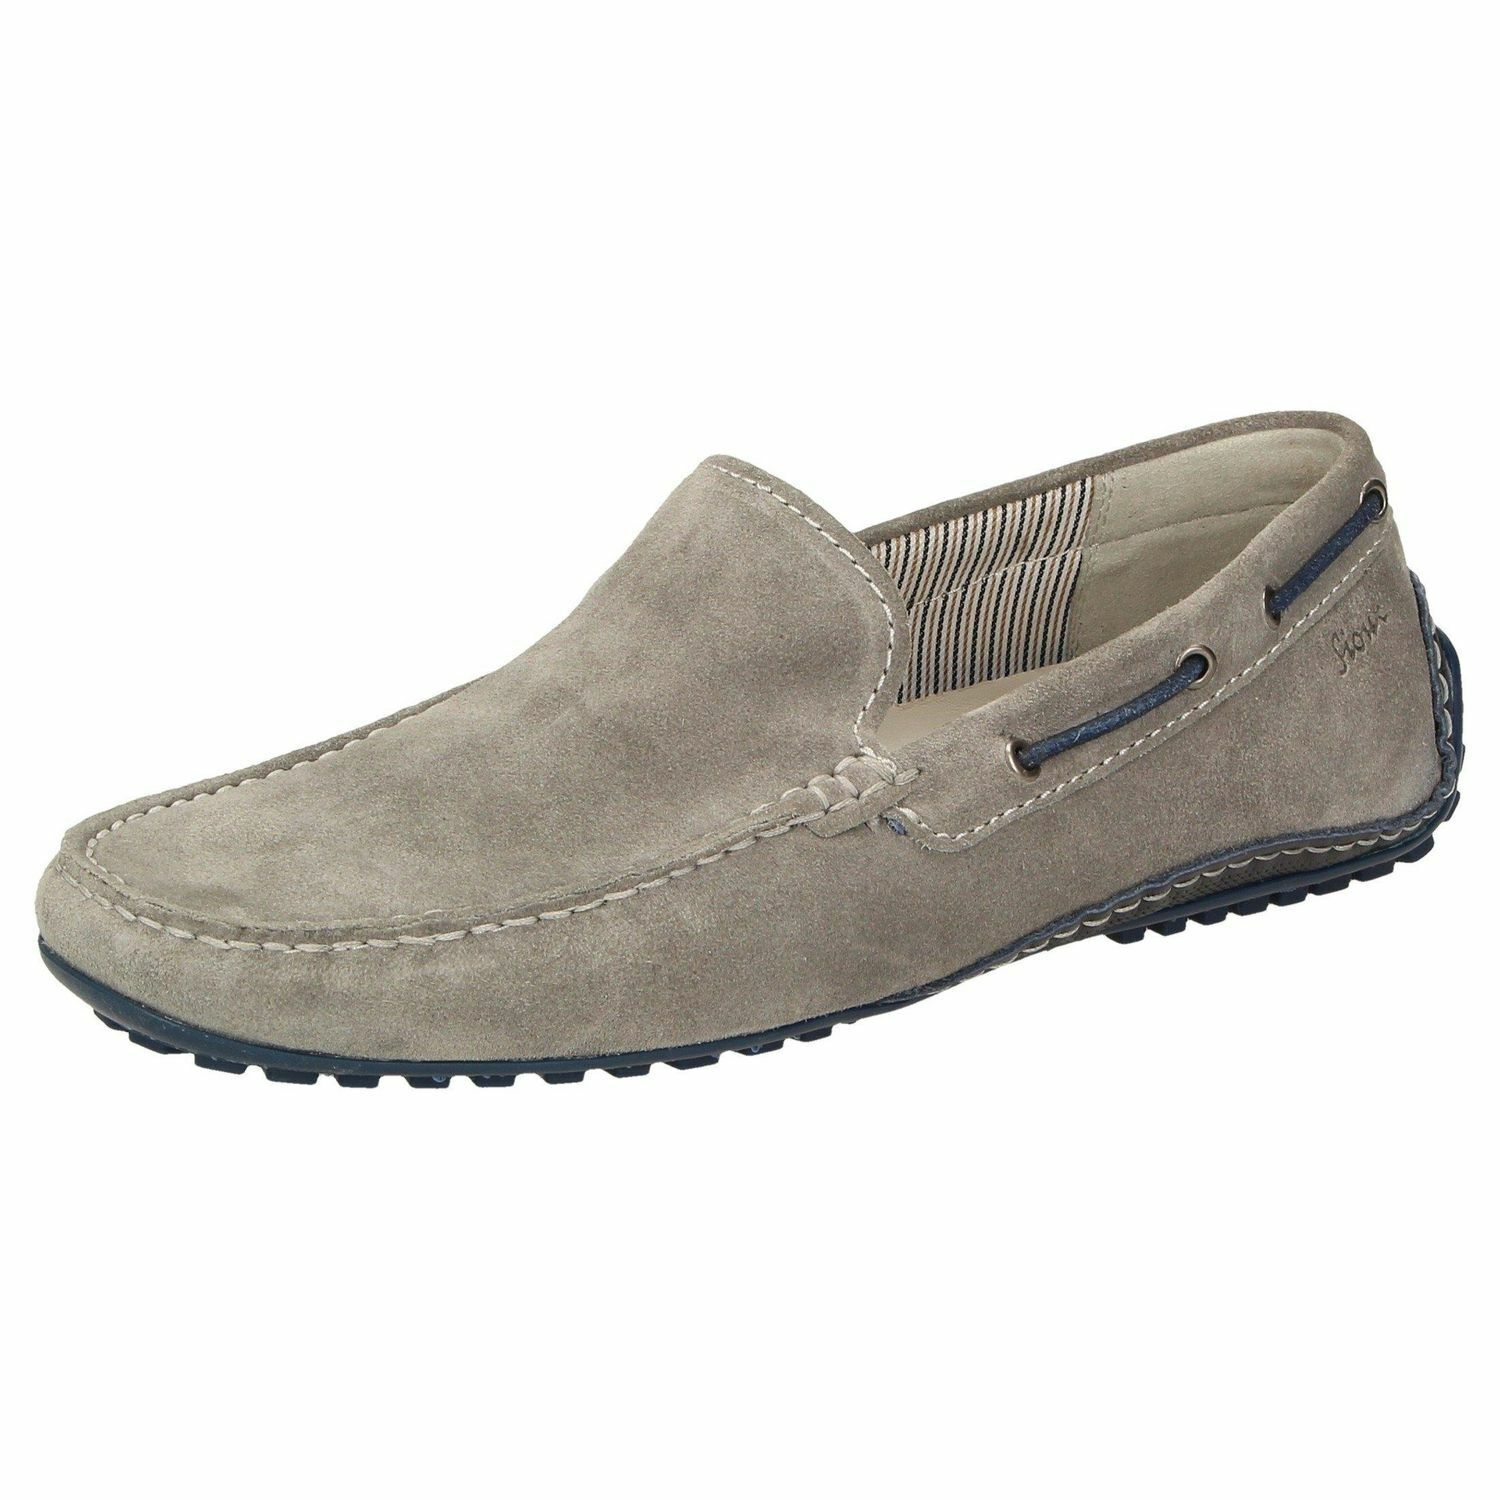 Callimo Slipper by SIOUX GERMANY 34719 MOKASSIN CALLIMO Piombo Night